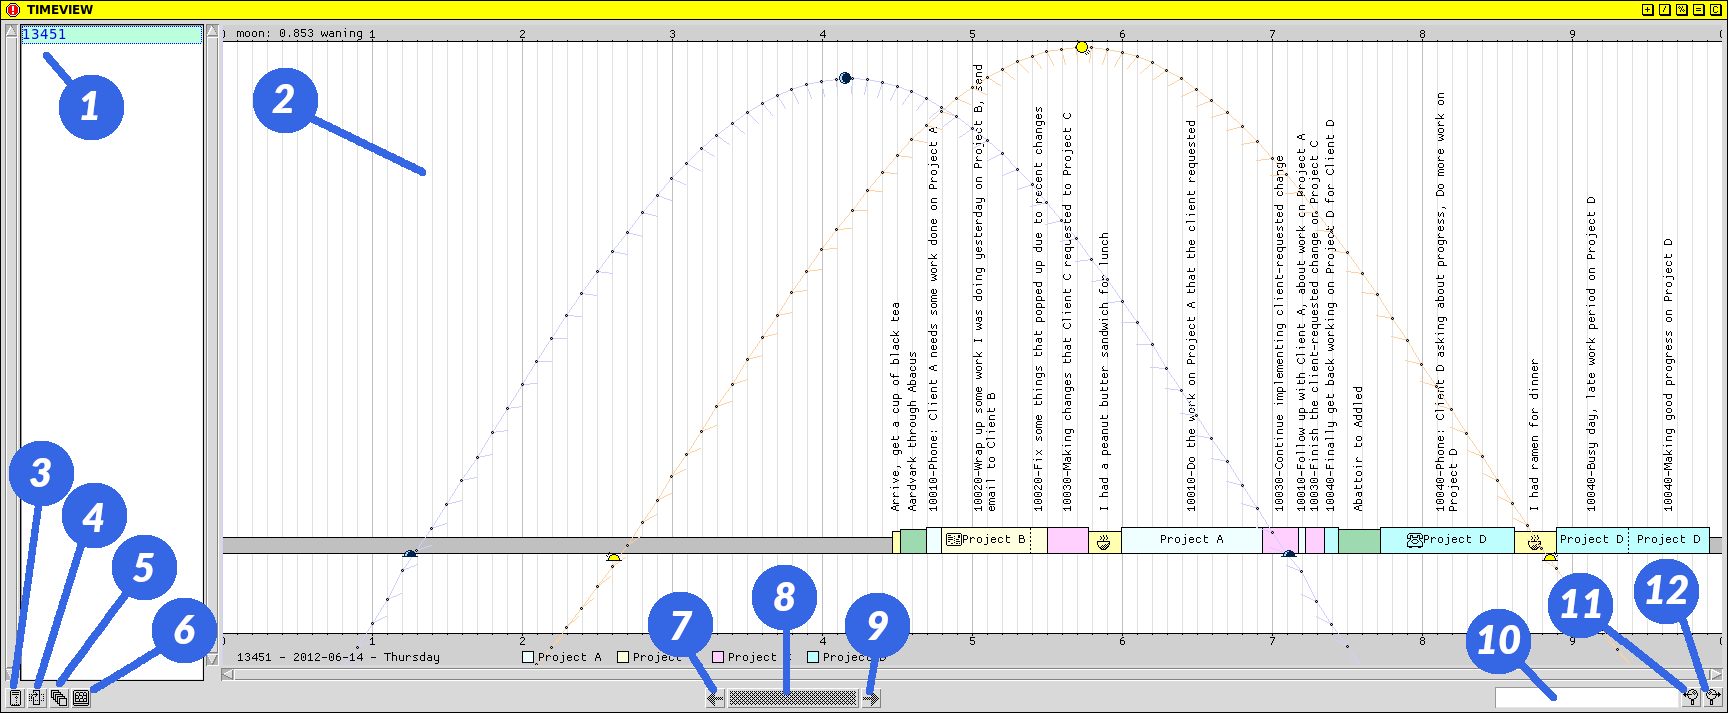 Screen capture of TIMEVIEW GUI application